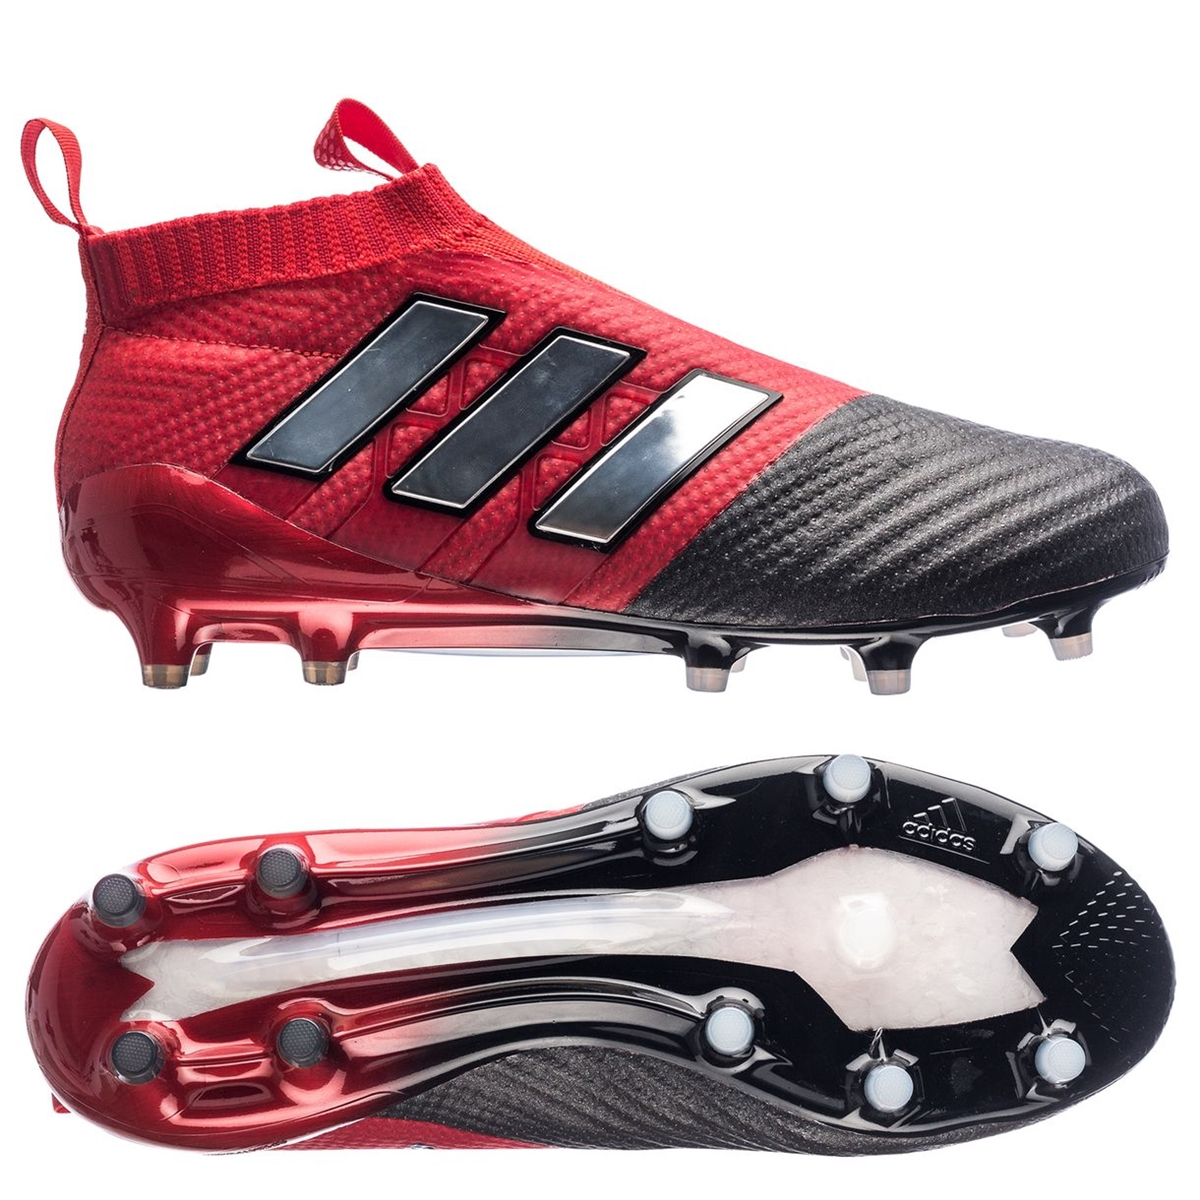 sports shoes 49e2f 00a7e Adidas ACE 17+ PURECONTROL FG Soccer Cleats (Red White Black)